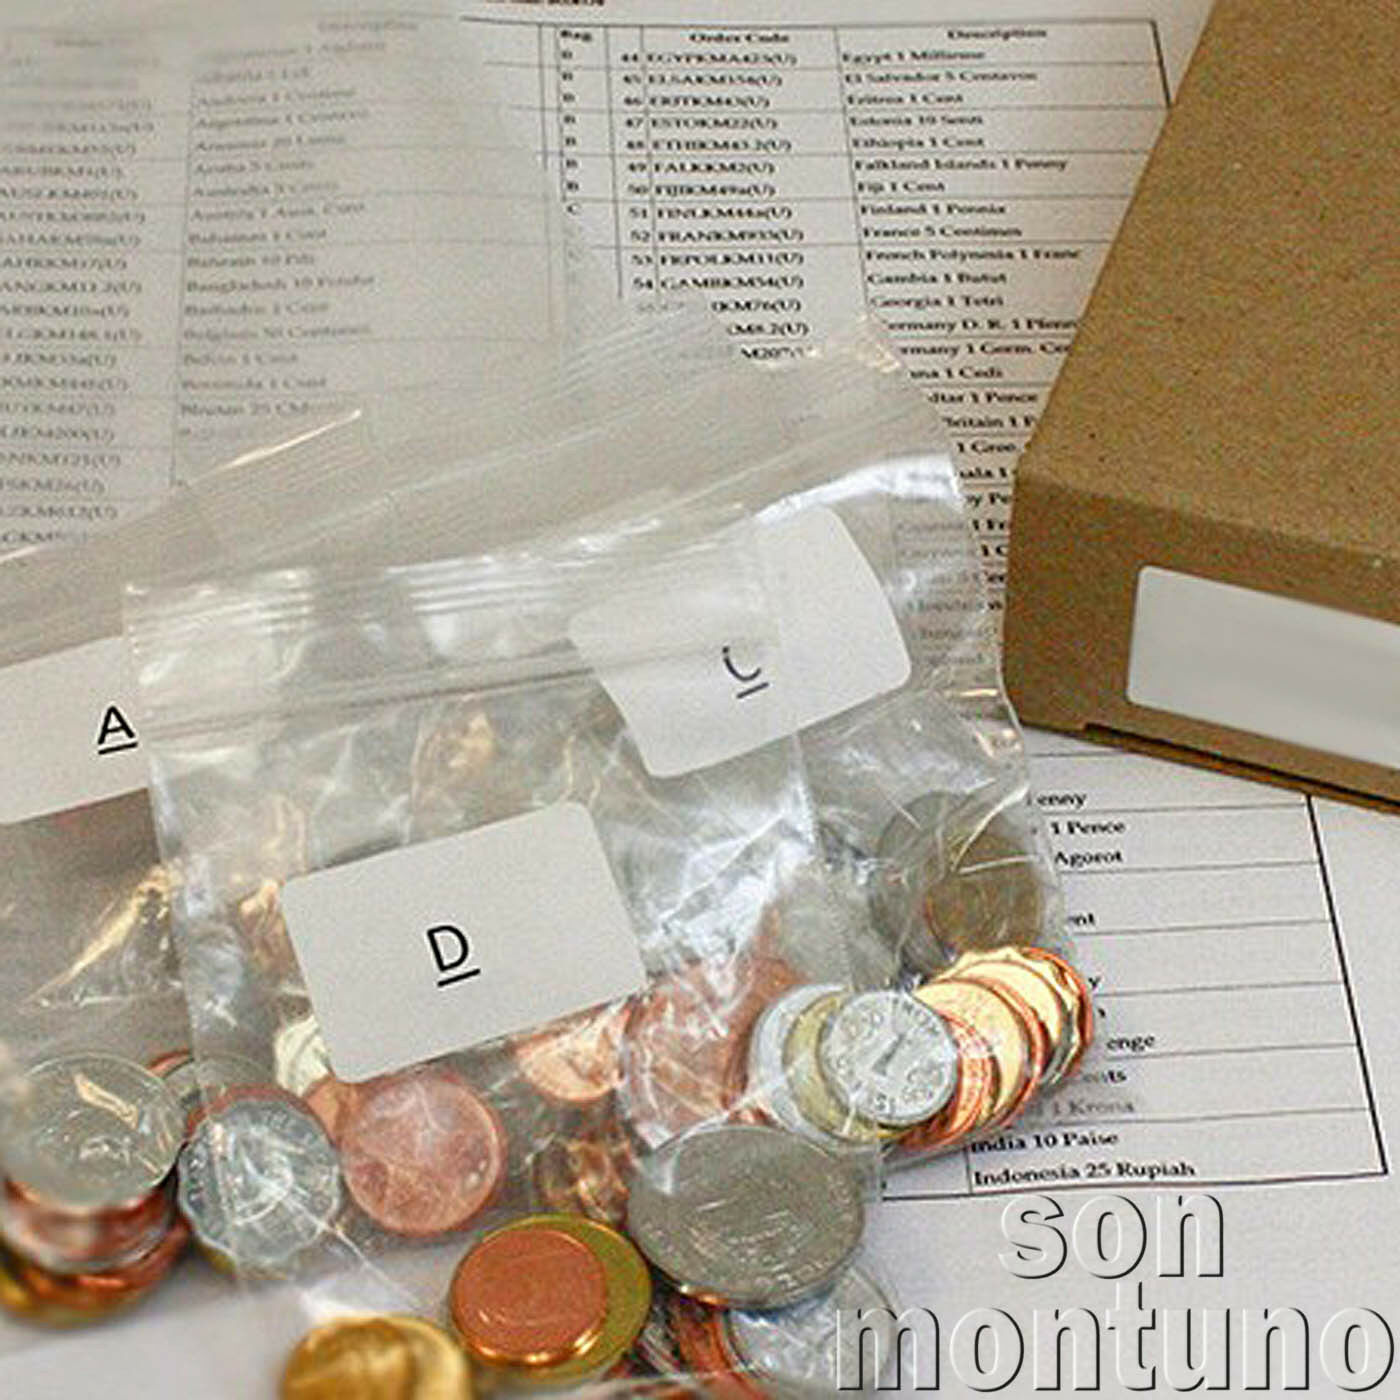 200 coins from 200 different countries - world collection - great starter gift